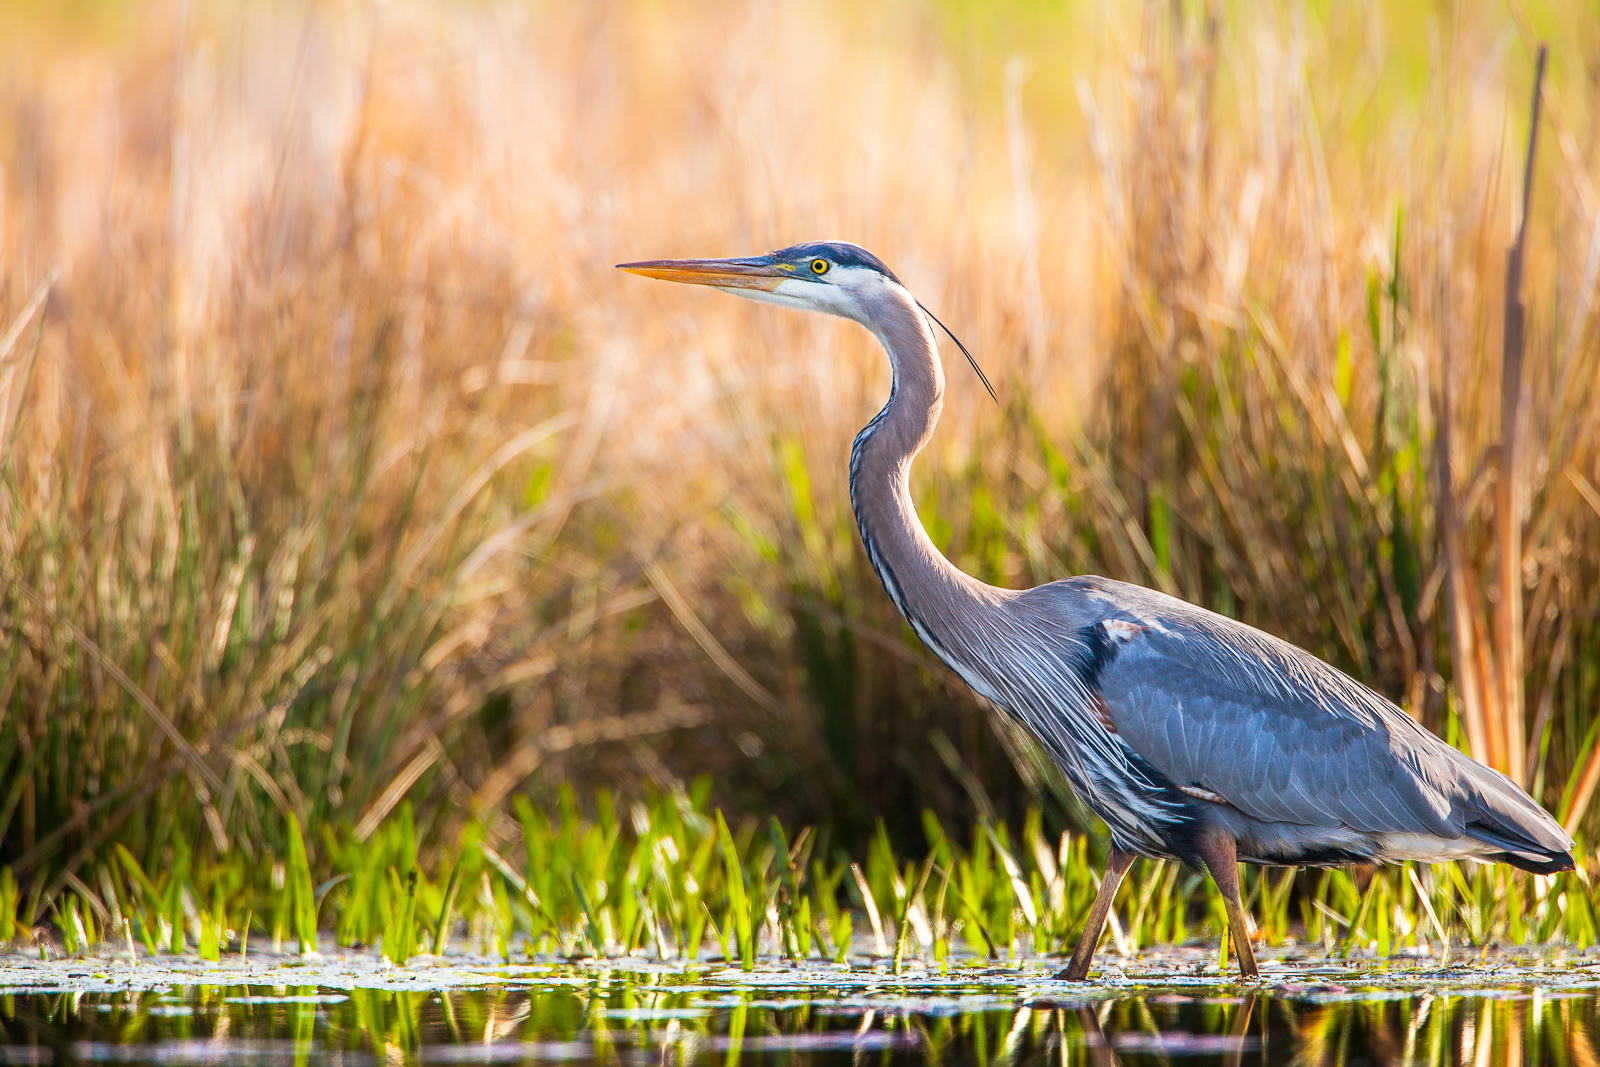 At the edge of a beaver pond the Great Blue Heron searches for tasty frogs and pollywogs.